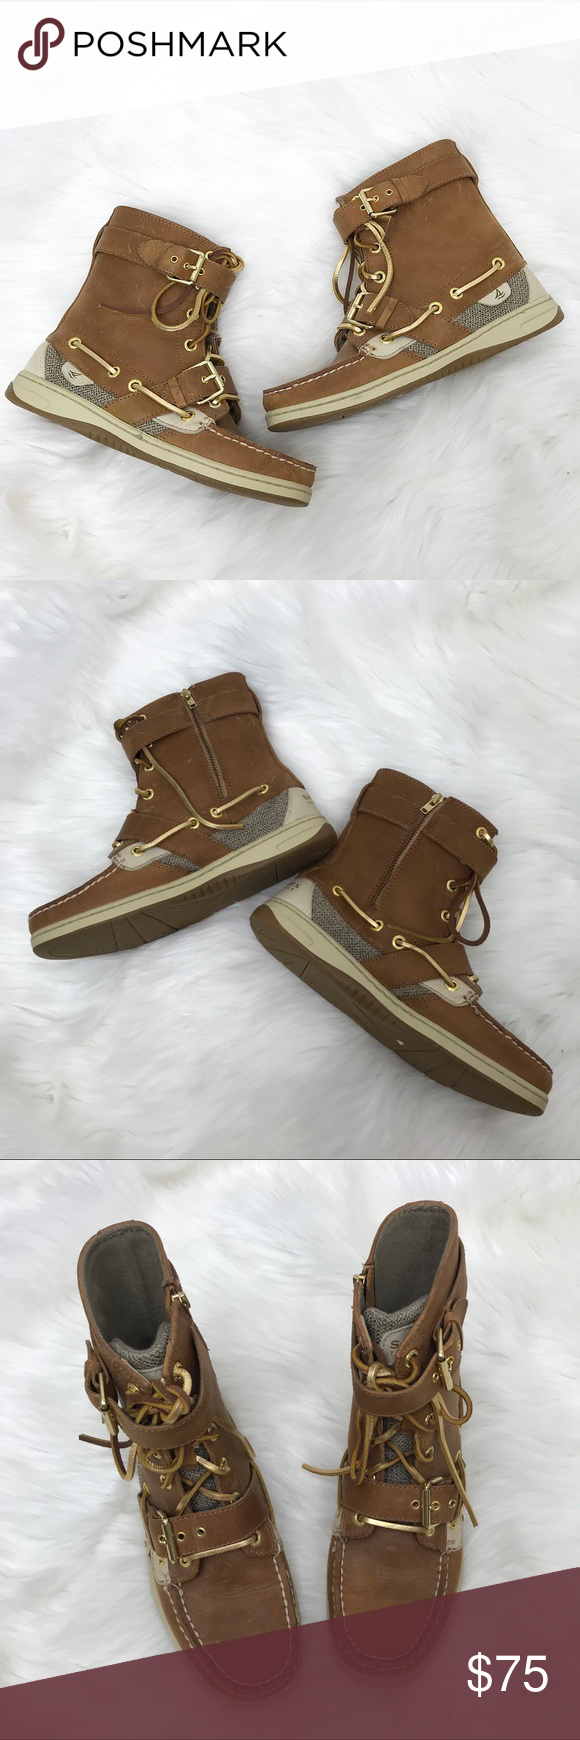 0e75a878090 Sperry Top-Sider  Tan Boat Shoe Boots